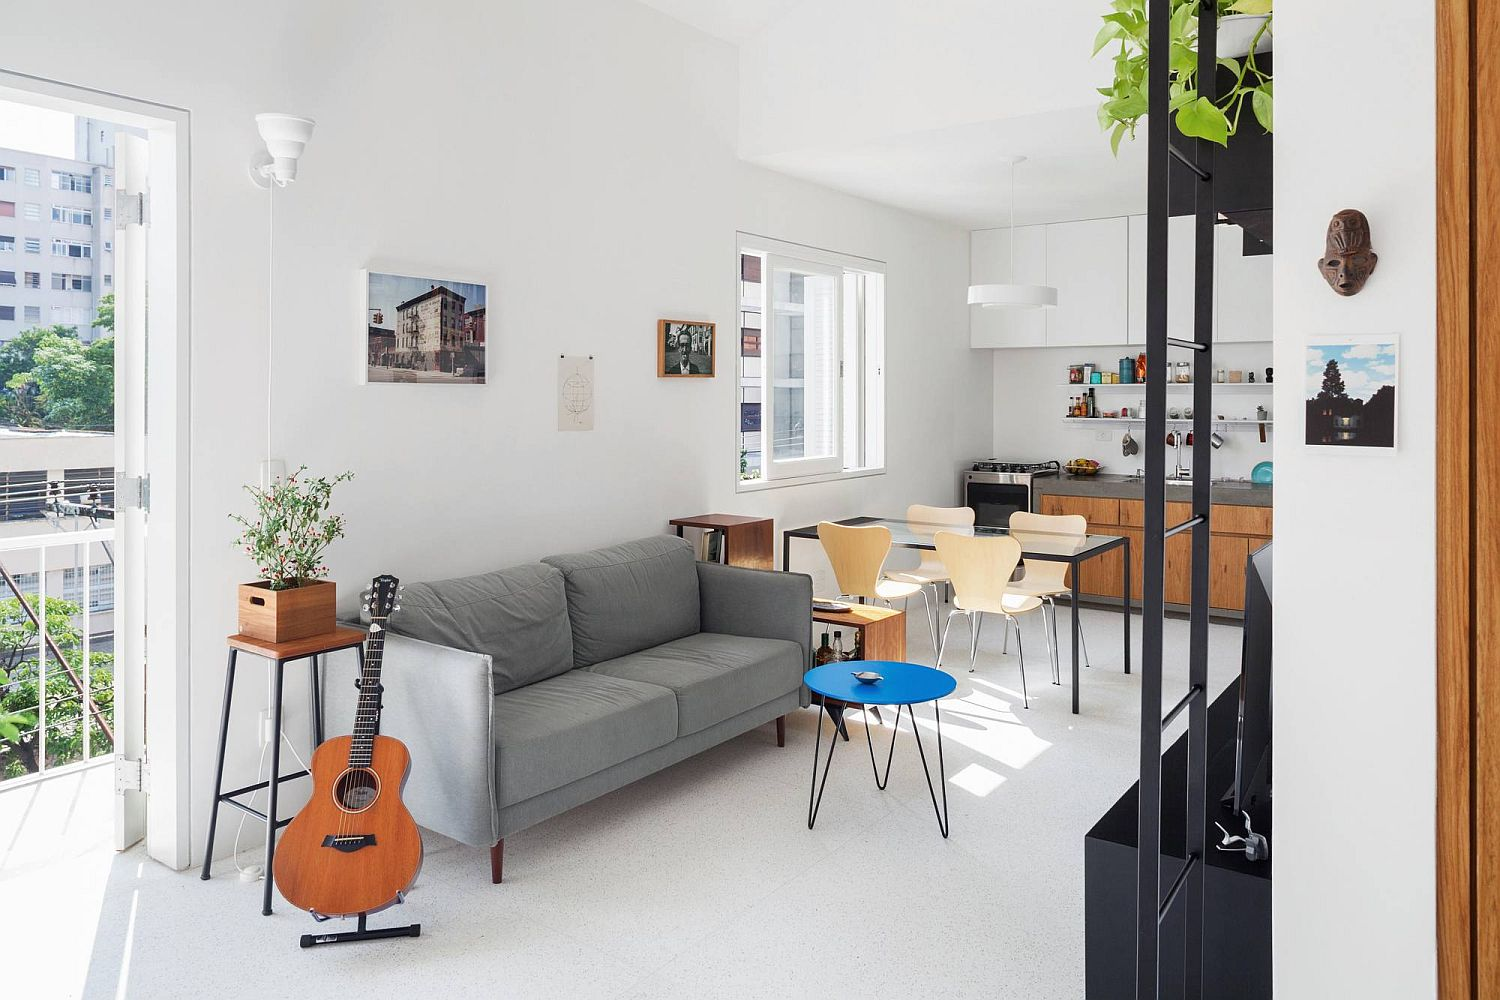 Simple and elegant living space of the small apartment